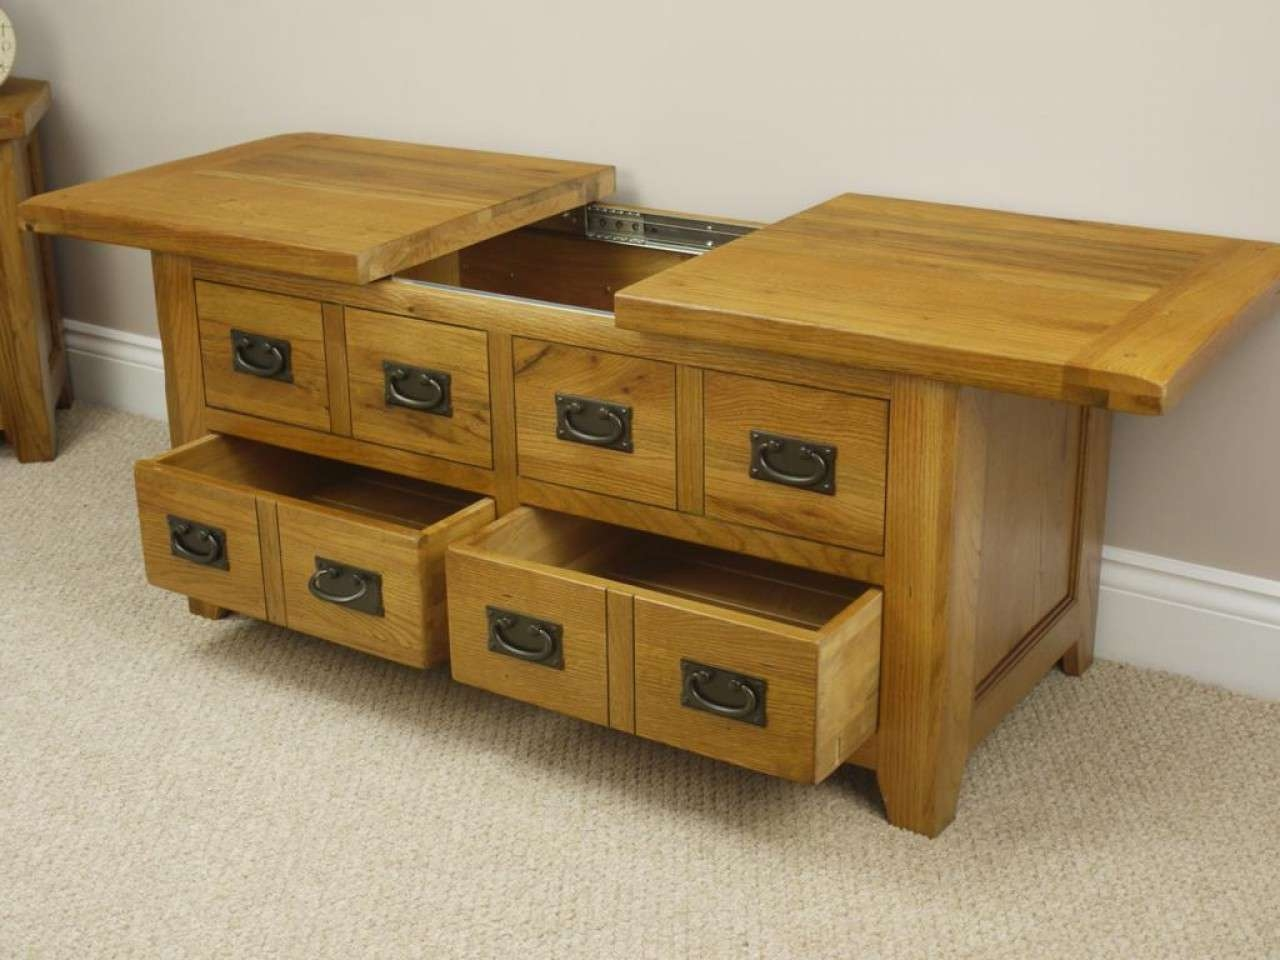 Coffee Tables : Large Oak Coffee Table With Storage Tables Square Intended For 2018 Oak Coffee Table With Storage (View 5 of 20)